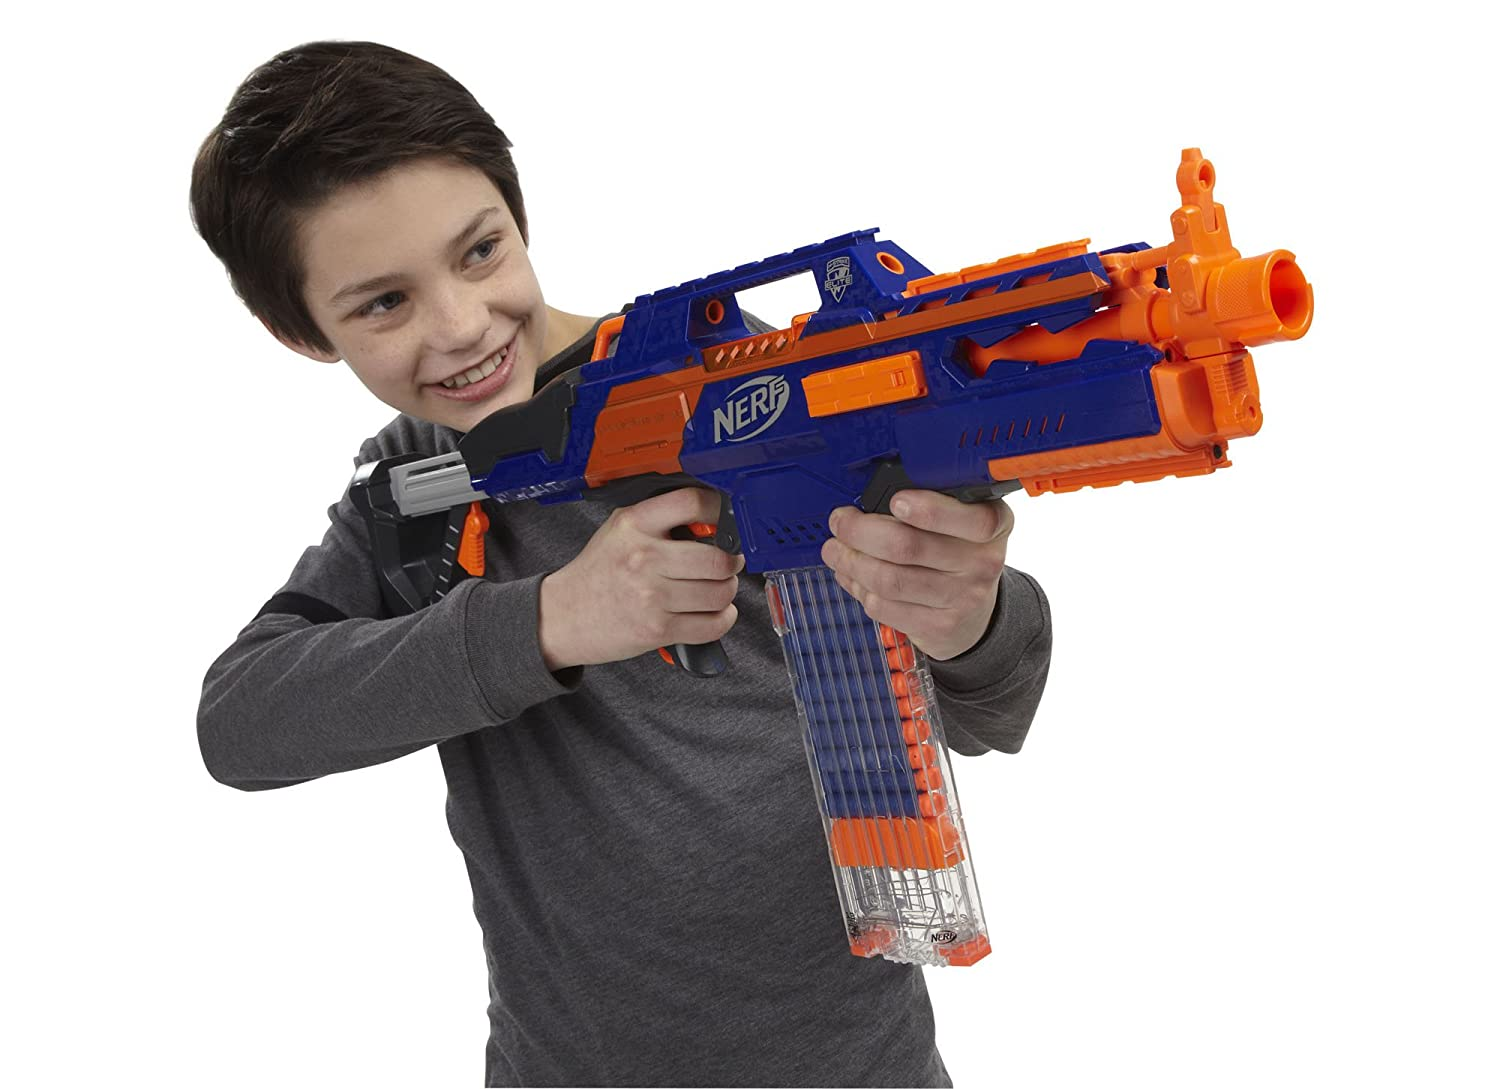 Nerf N-Strike Elite Rapidstrike CS18, Blasters & Foam Play - Amazon Canada